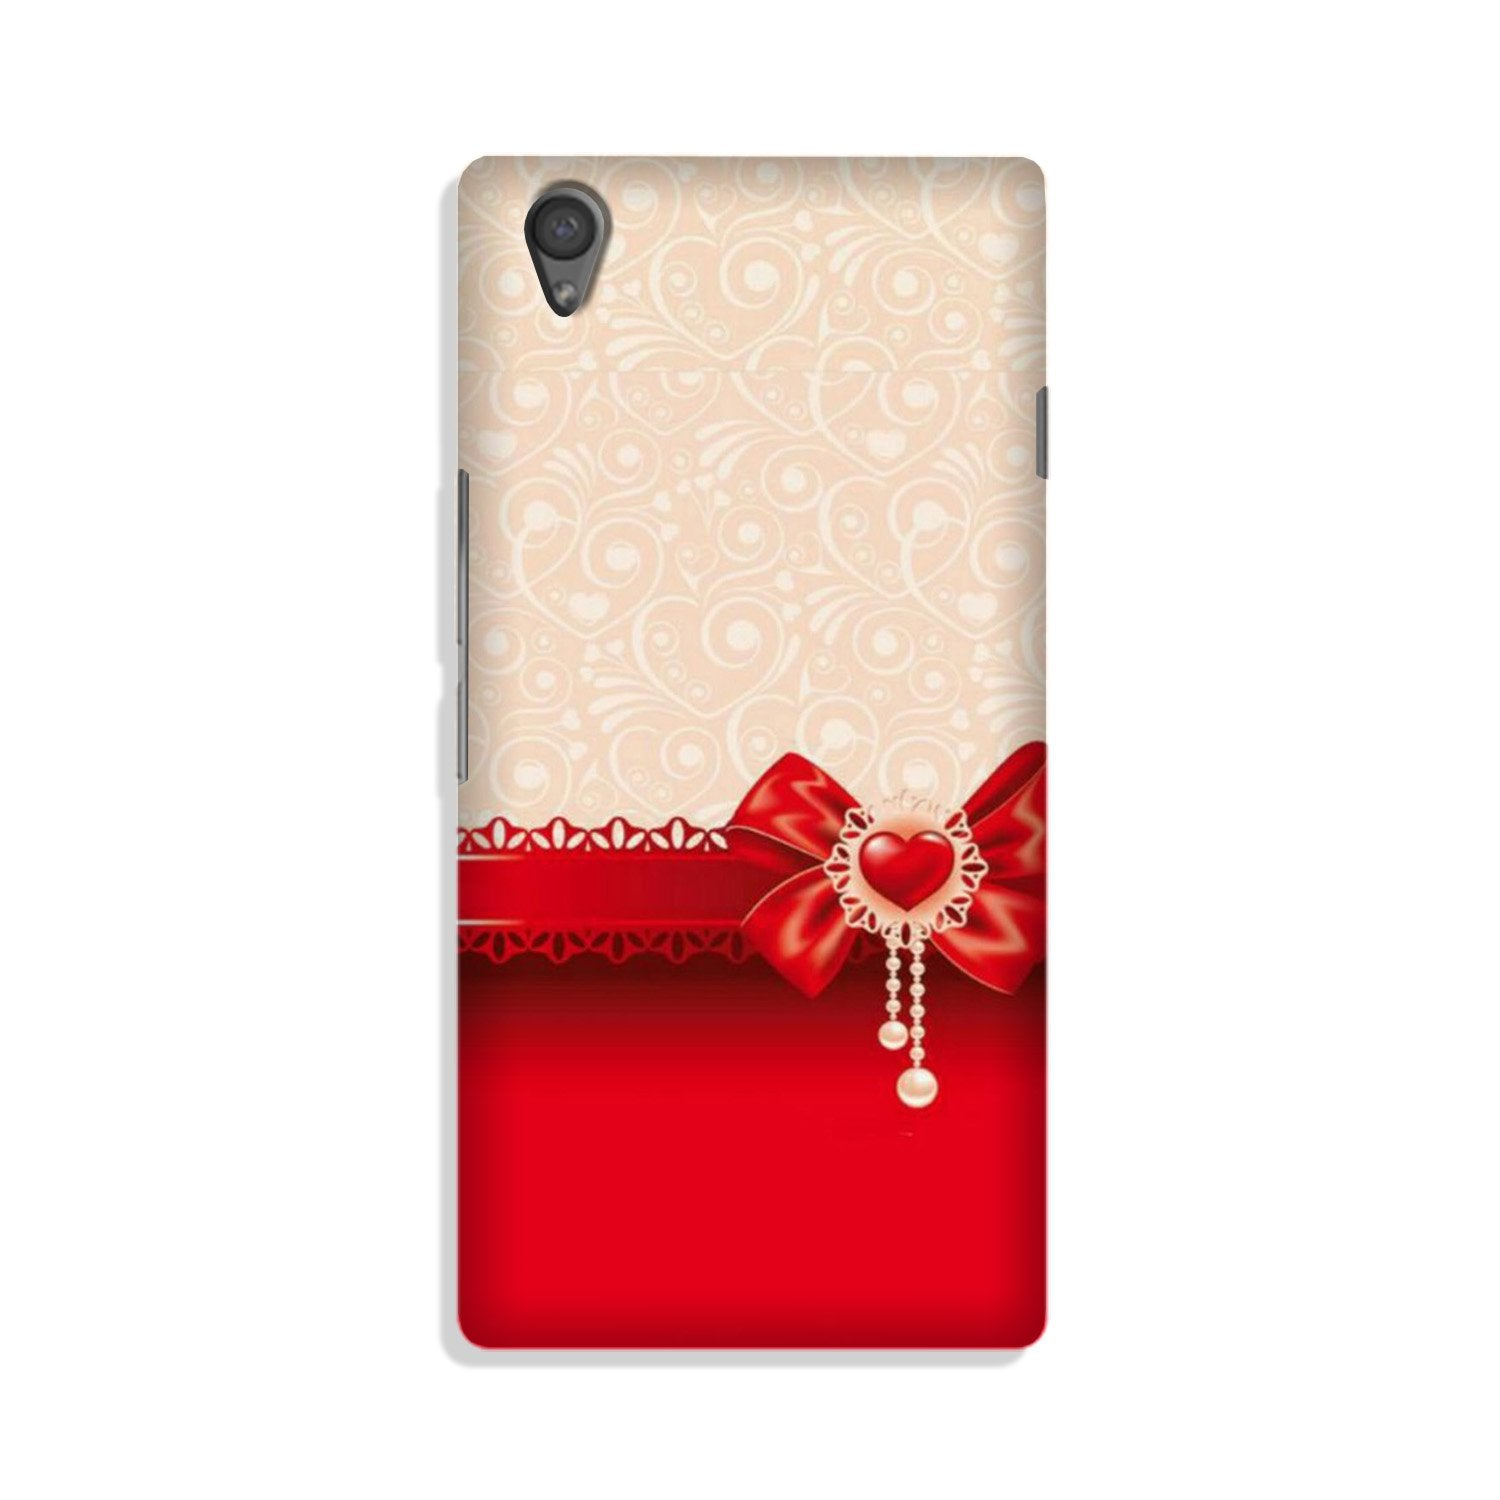 Gift Wrap3 Case for Vivo Y51L